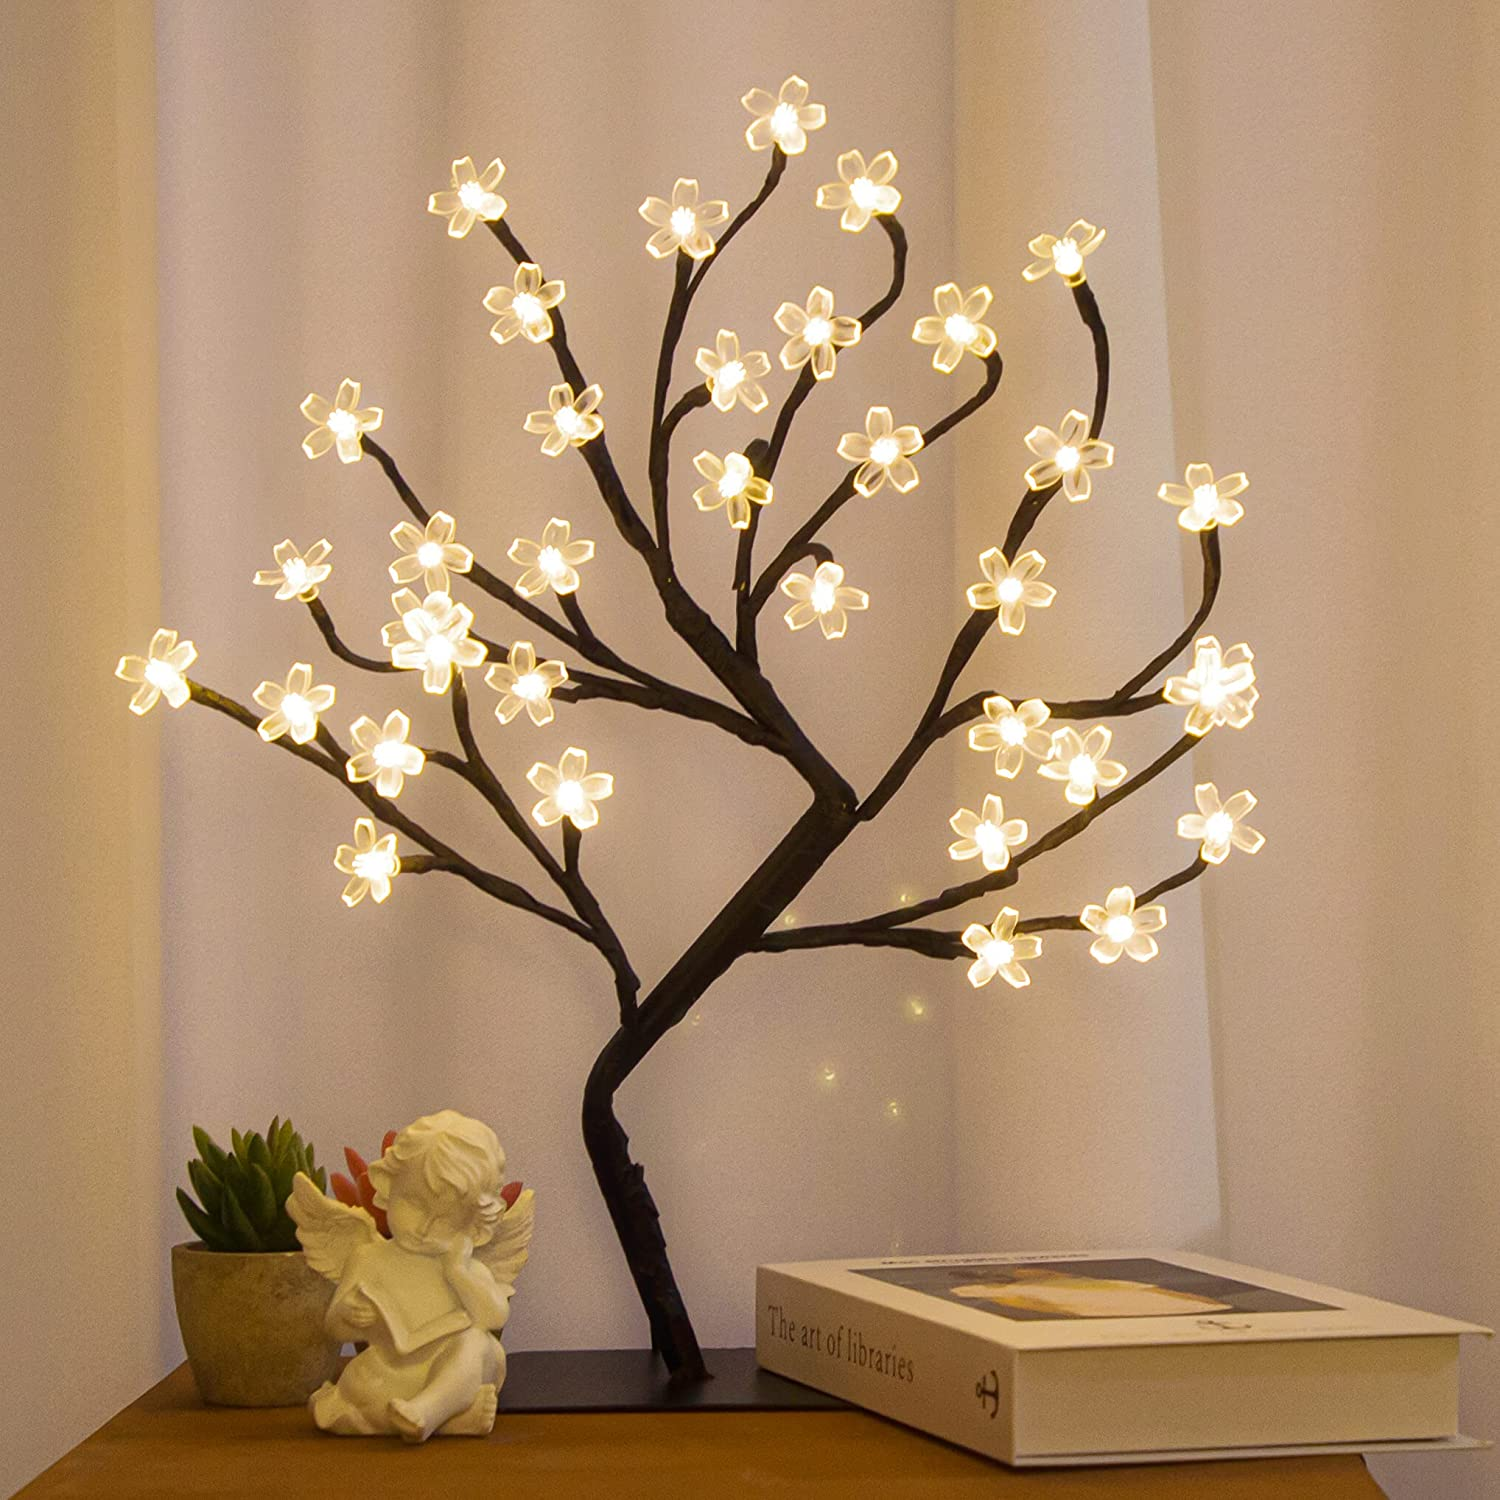 Brightdeco LED Lighted Tree Artificial Tree Ideal As Night Lights Décor for Indoor/Outdoor Perfect for Home Festival Easter Thanksgiving Christmas Wedding Party Warm White 1.5FT 36LED